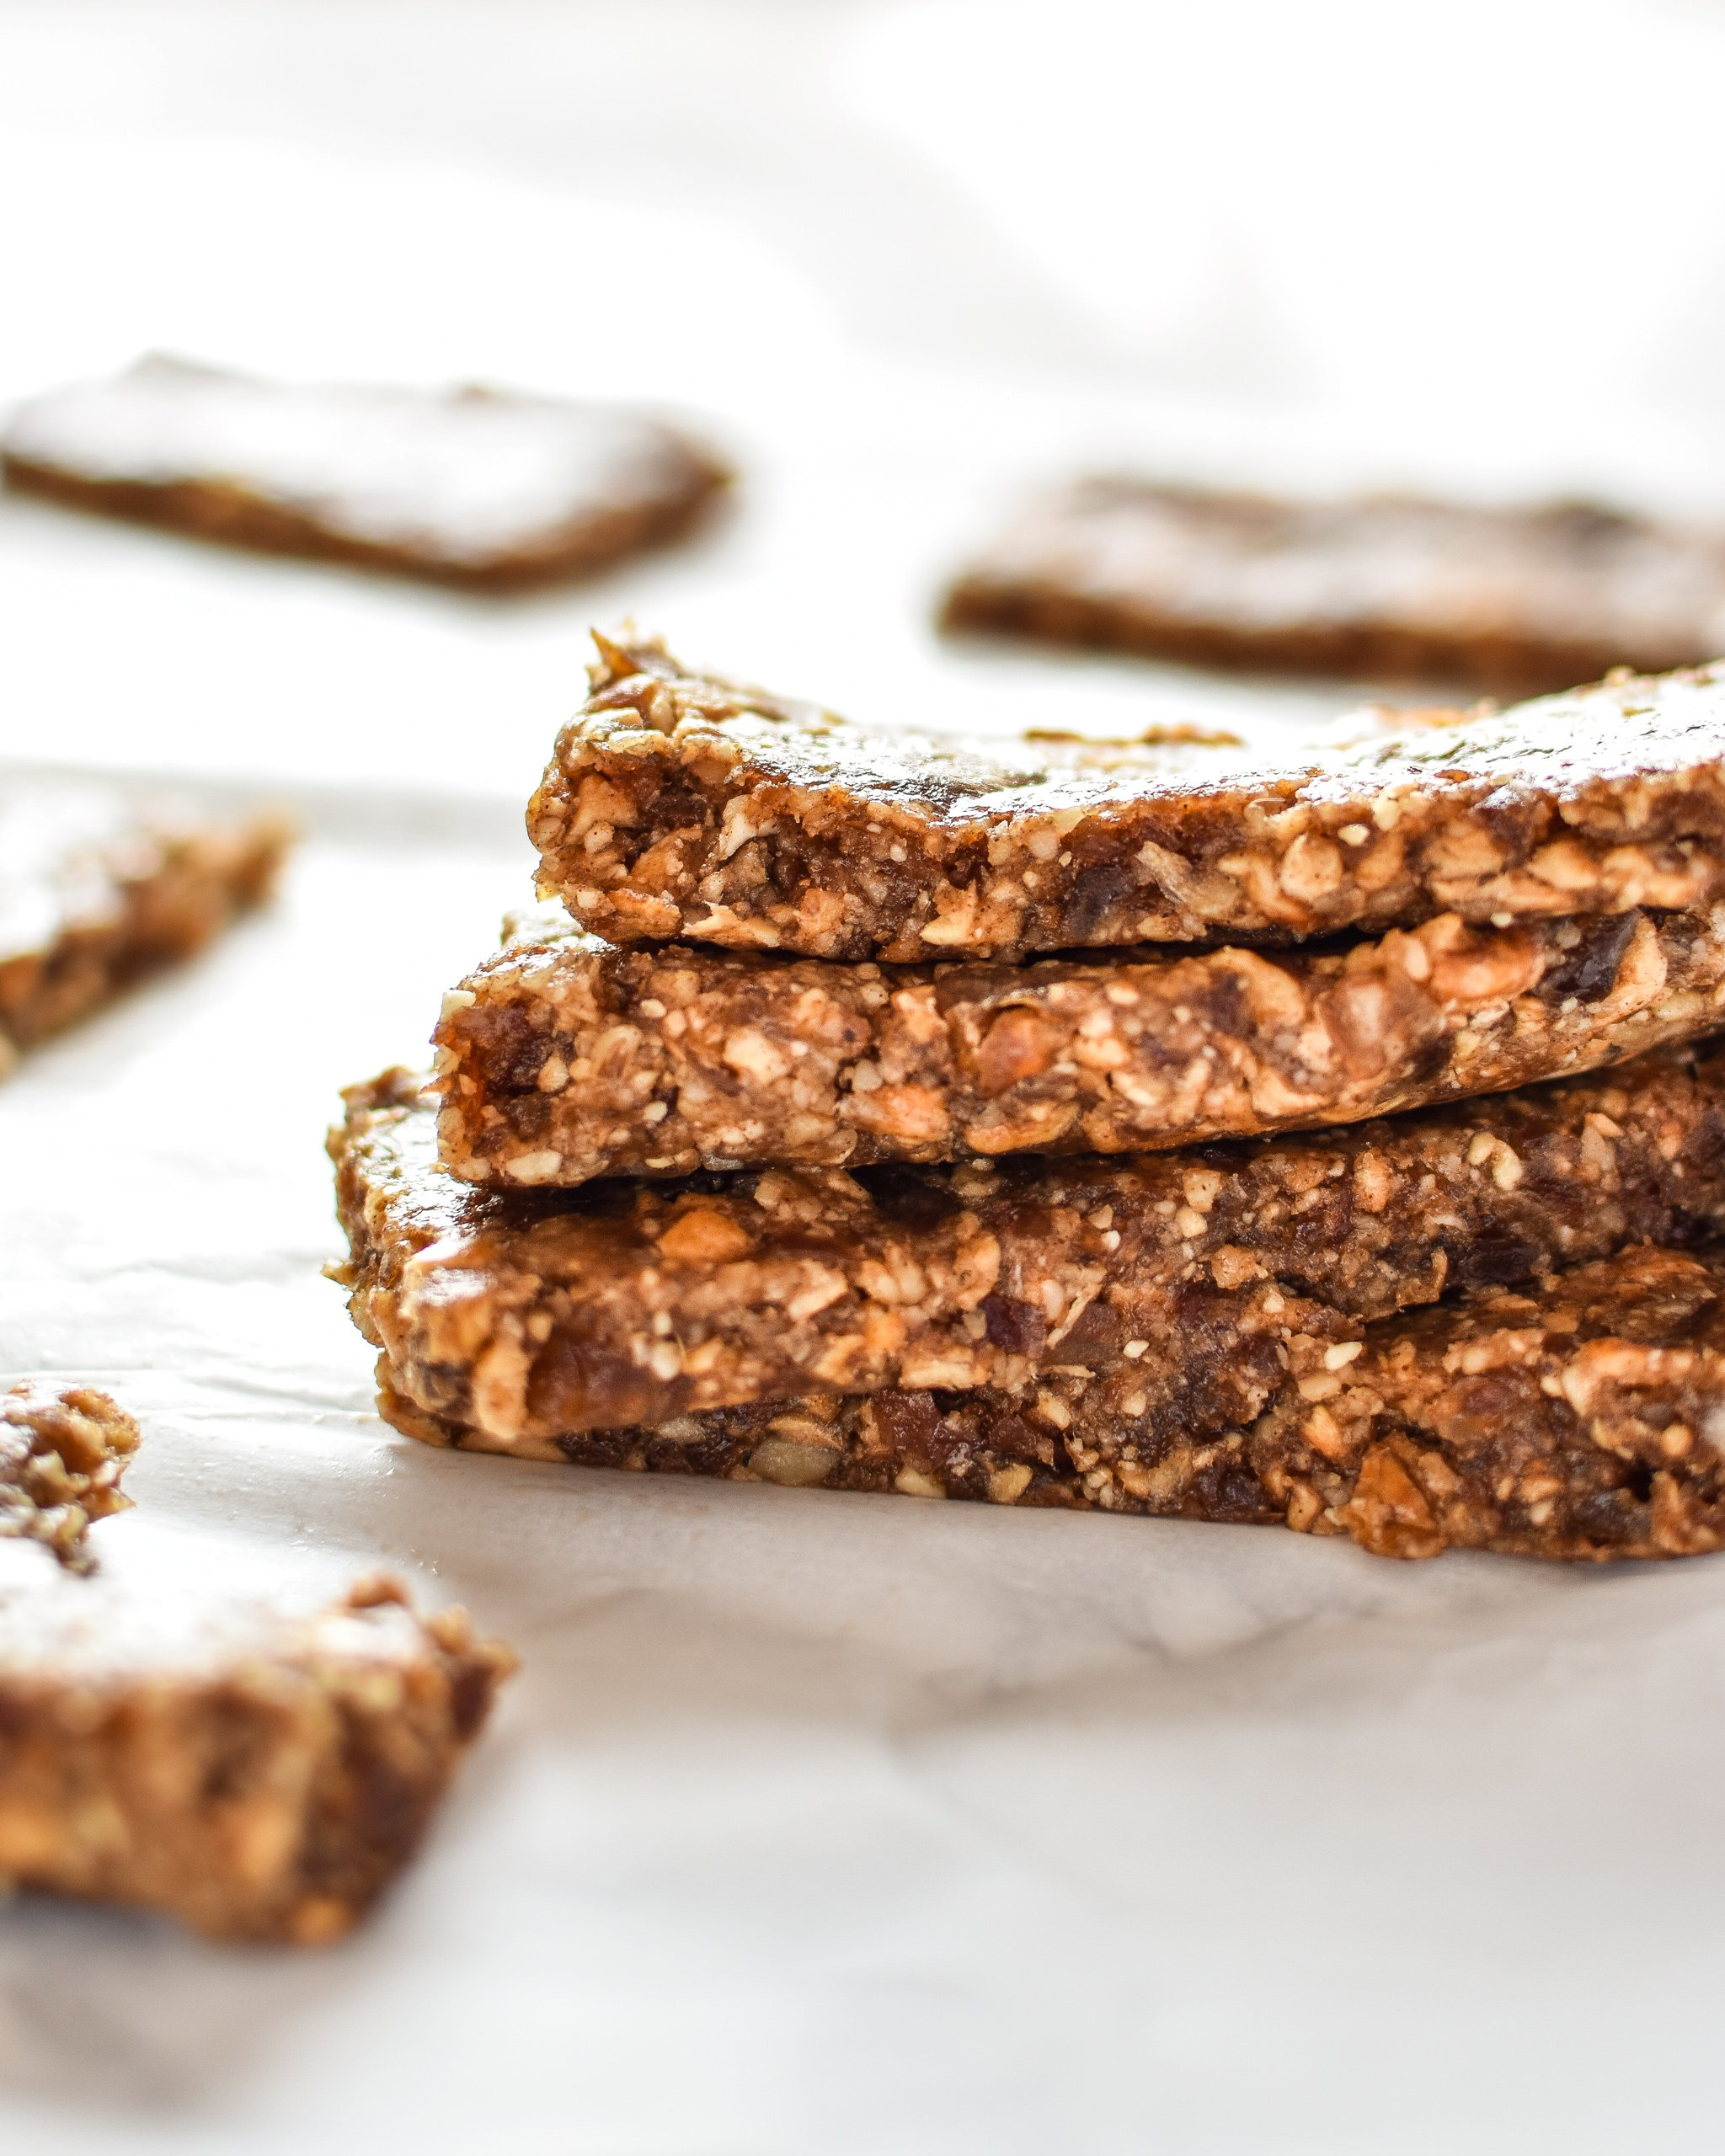 No-Bake Cinnamon Apple Date Bars stacked on one another, made with dates and dried apples